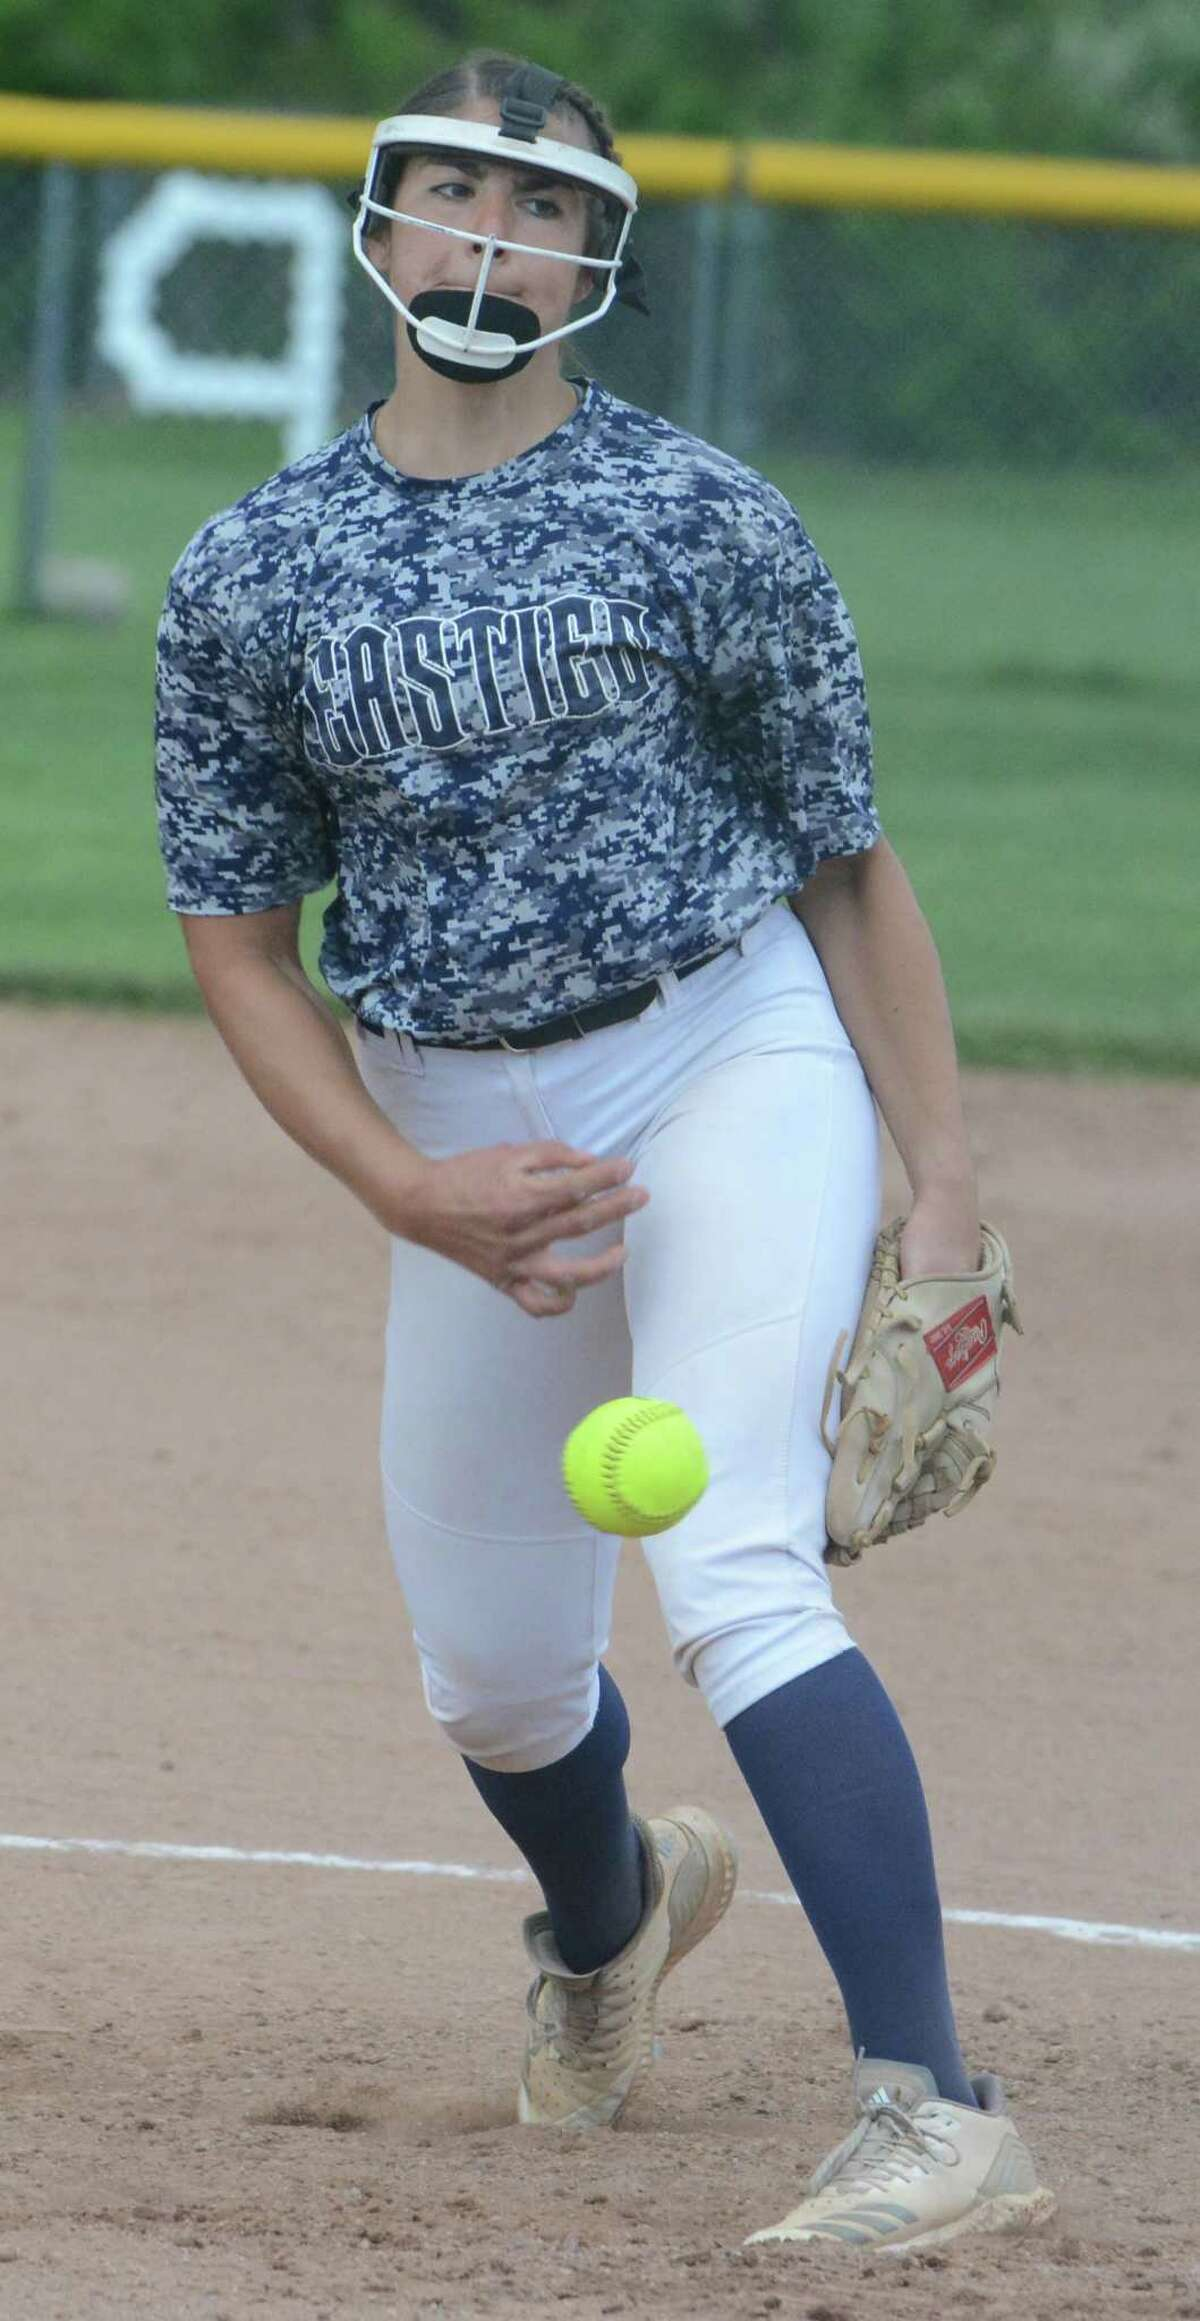 East Haven pitcher Tori Heaphy delivers against Mercy on Monday.